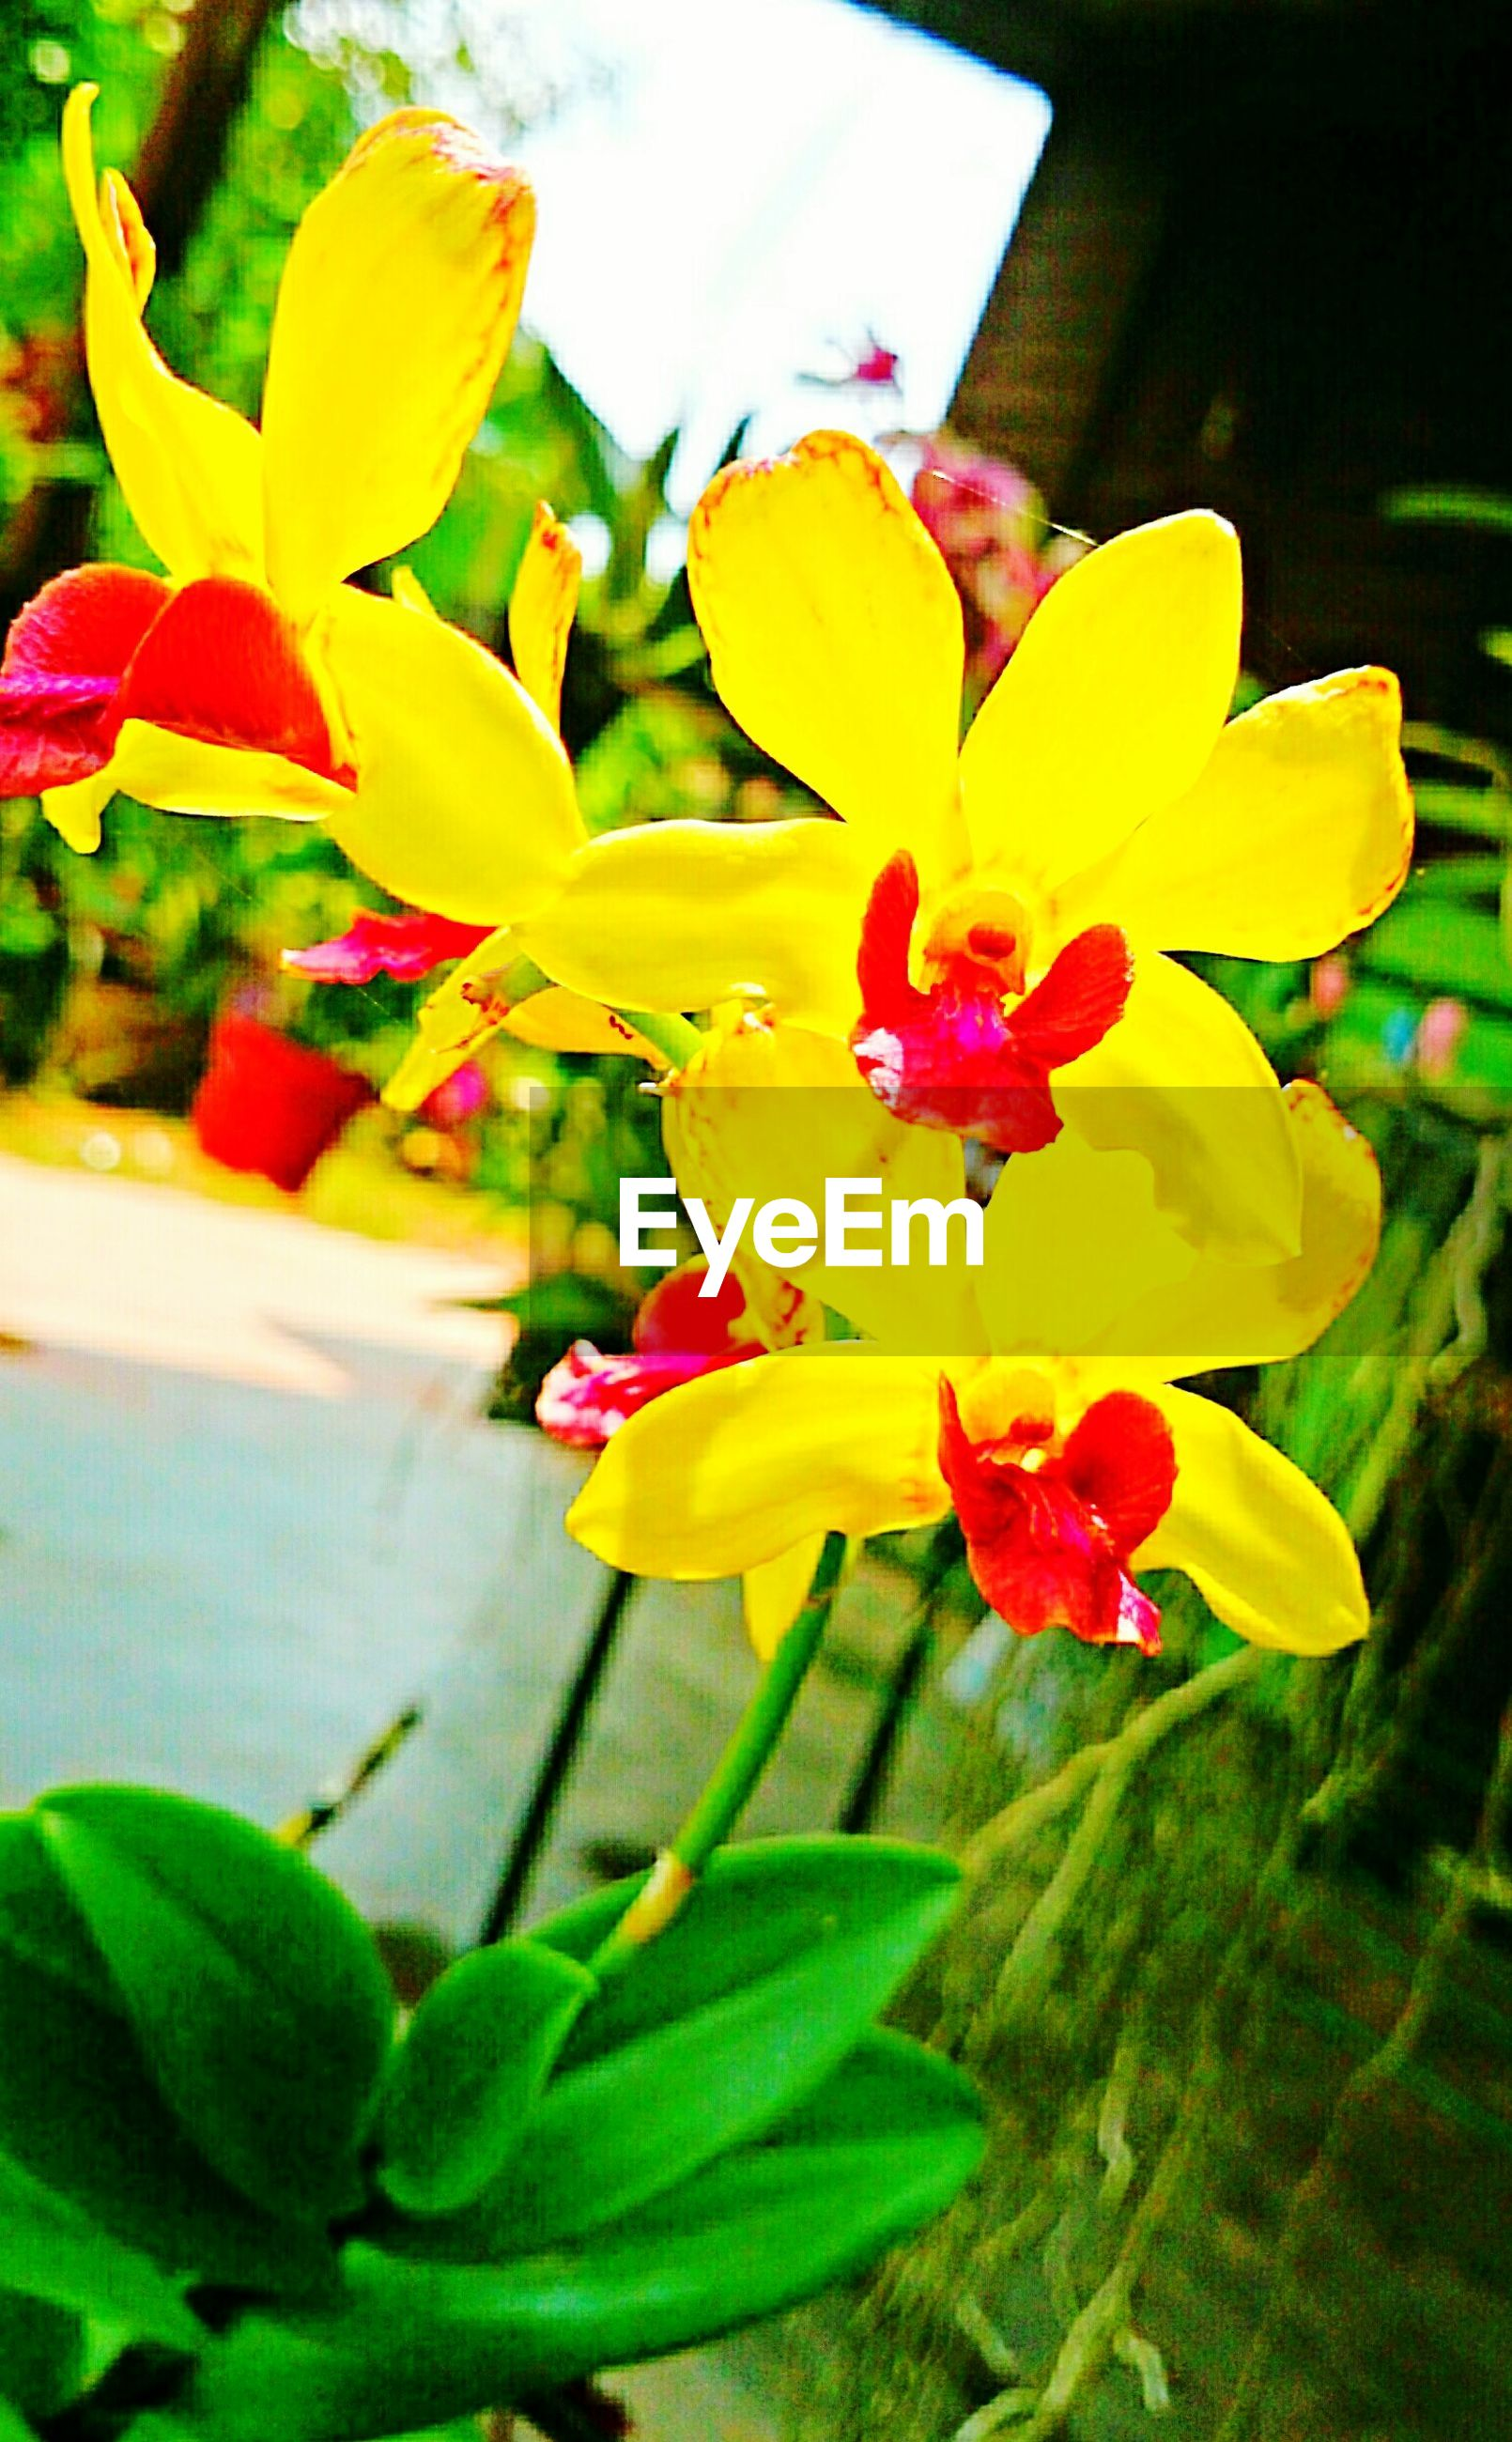 Yellow and red orchids blooming outdoors